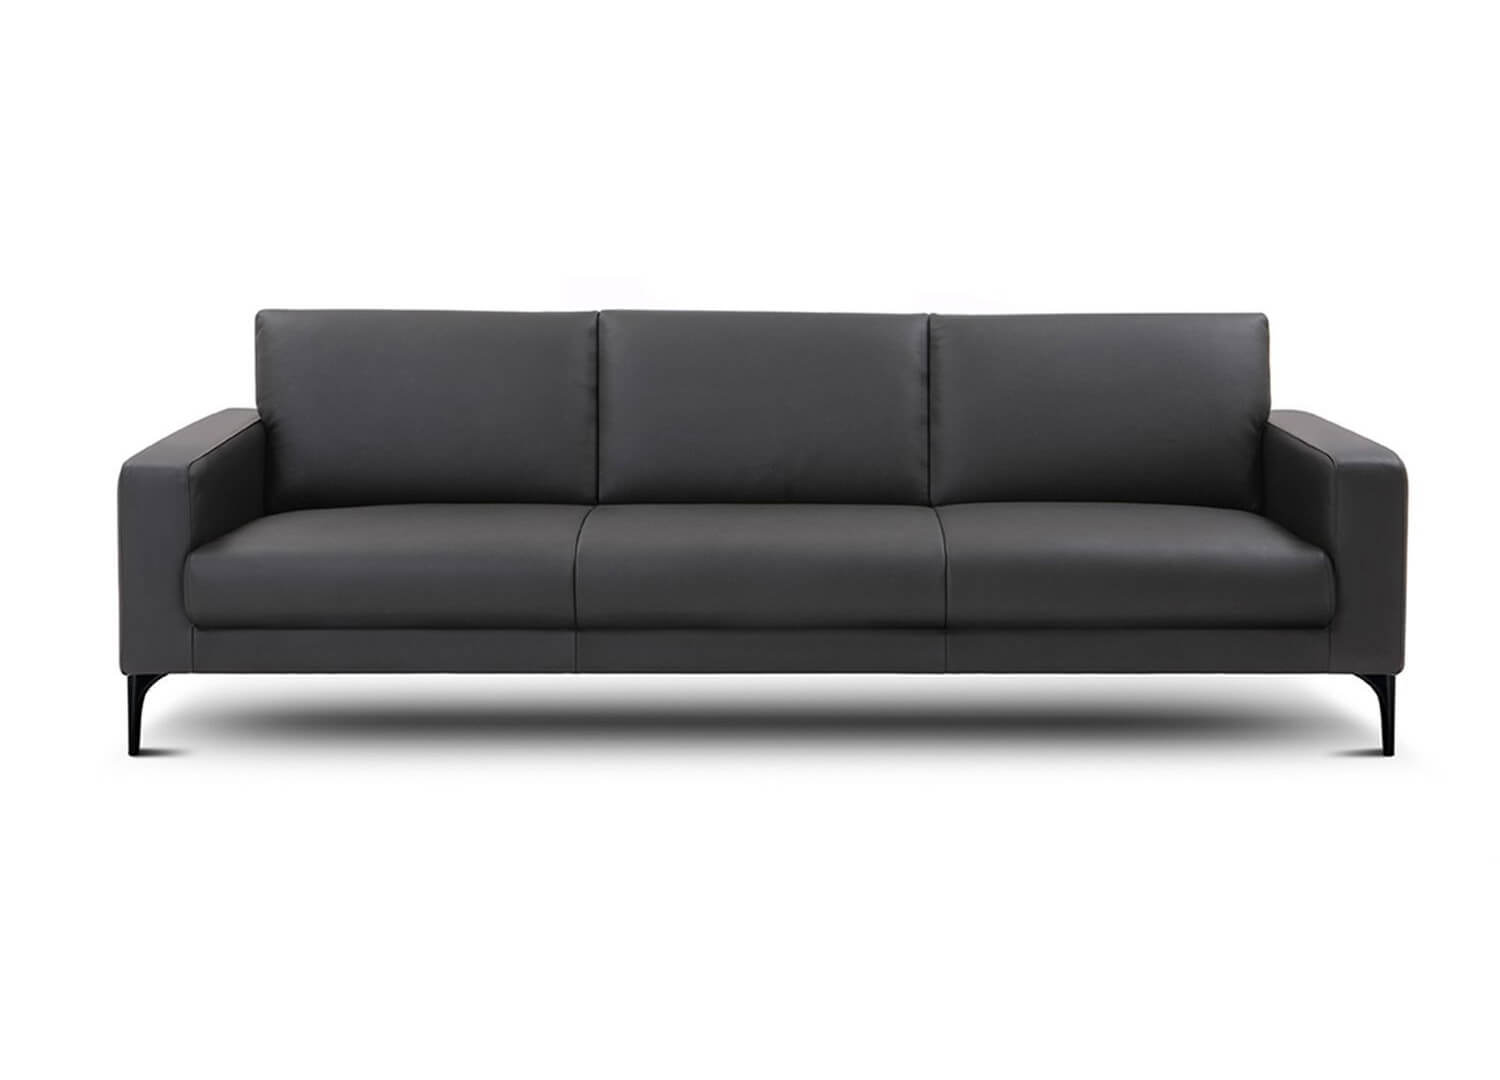 Est Living Design Directory King Living Opera Sofa 1